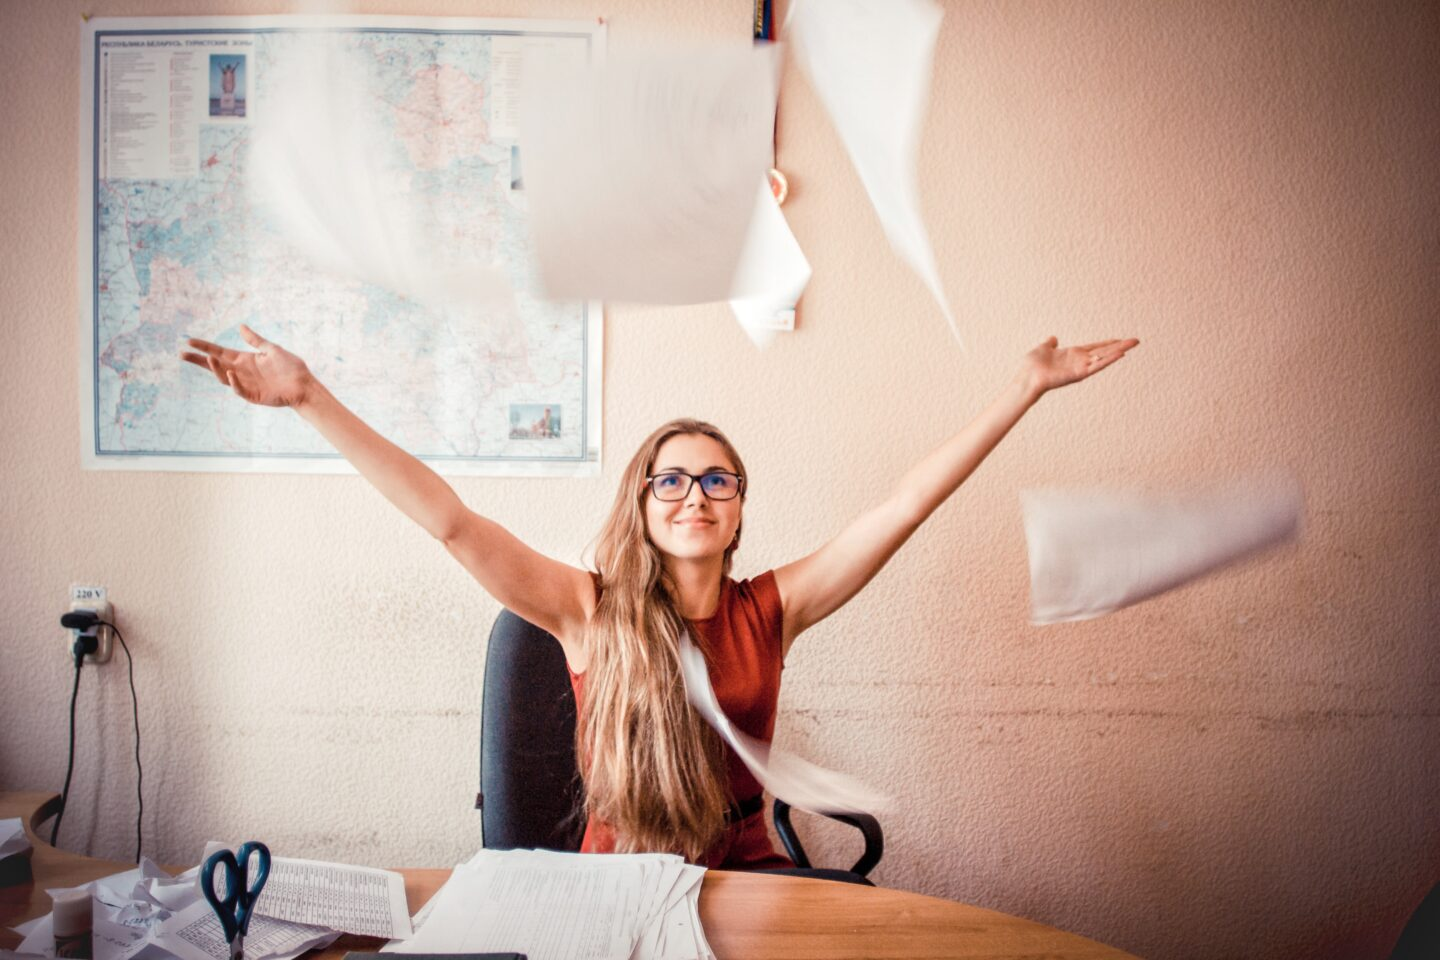 Confident women in her new job after trying out these tips to stop feeling incompetent at work